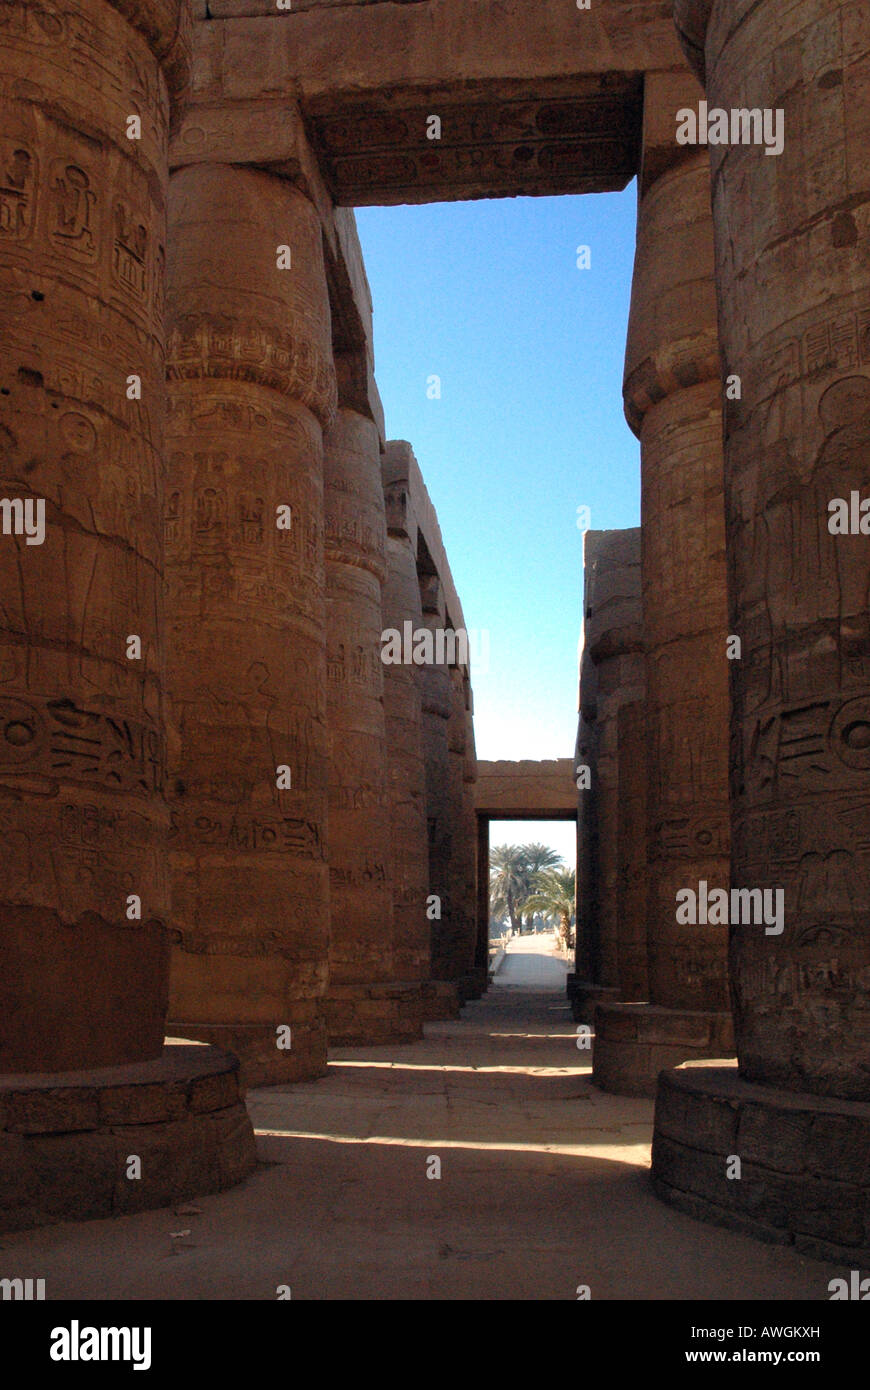 Great Hypostyle Hall, Karnak looking North. - Stock Image